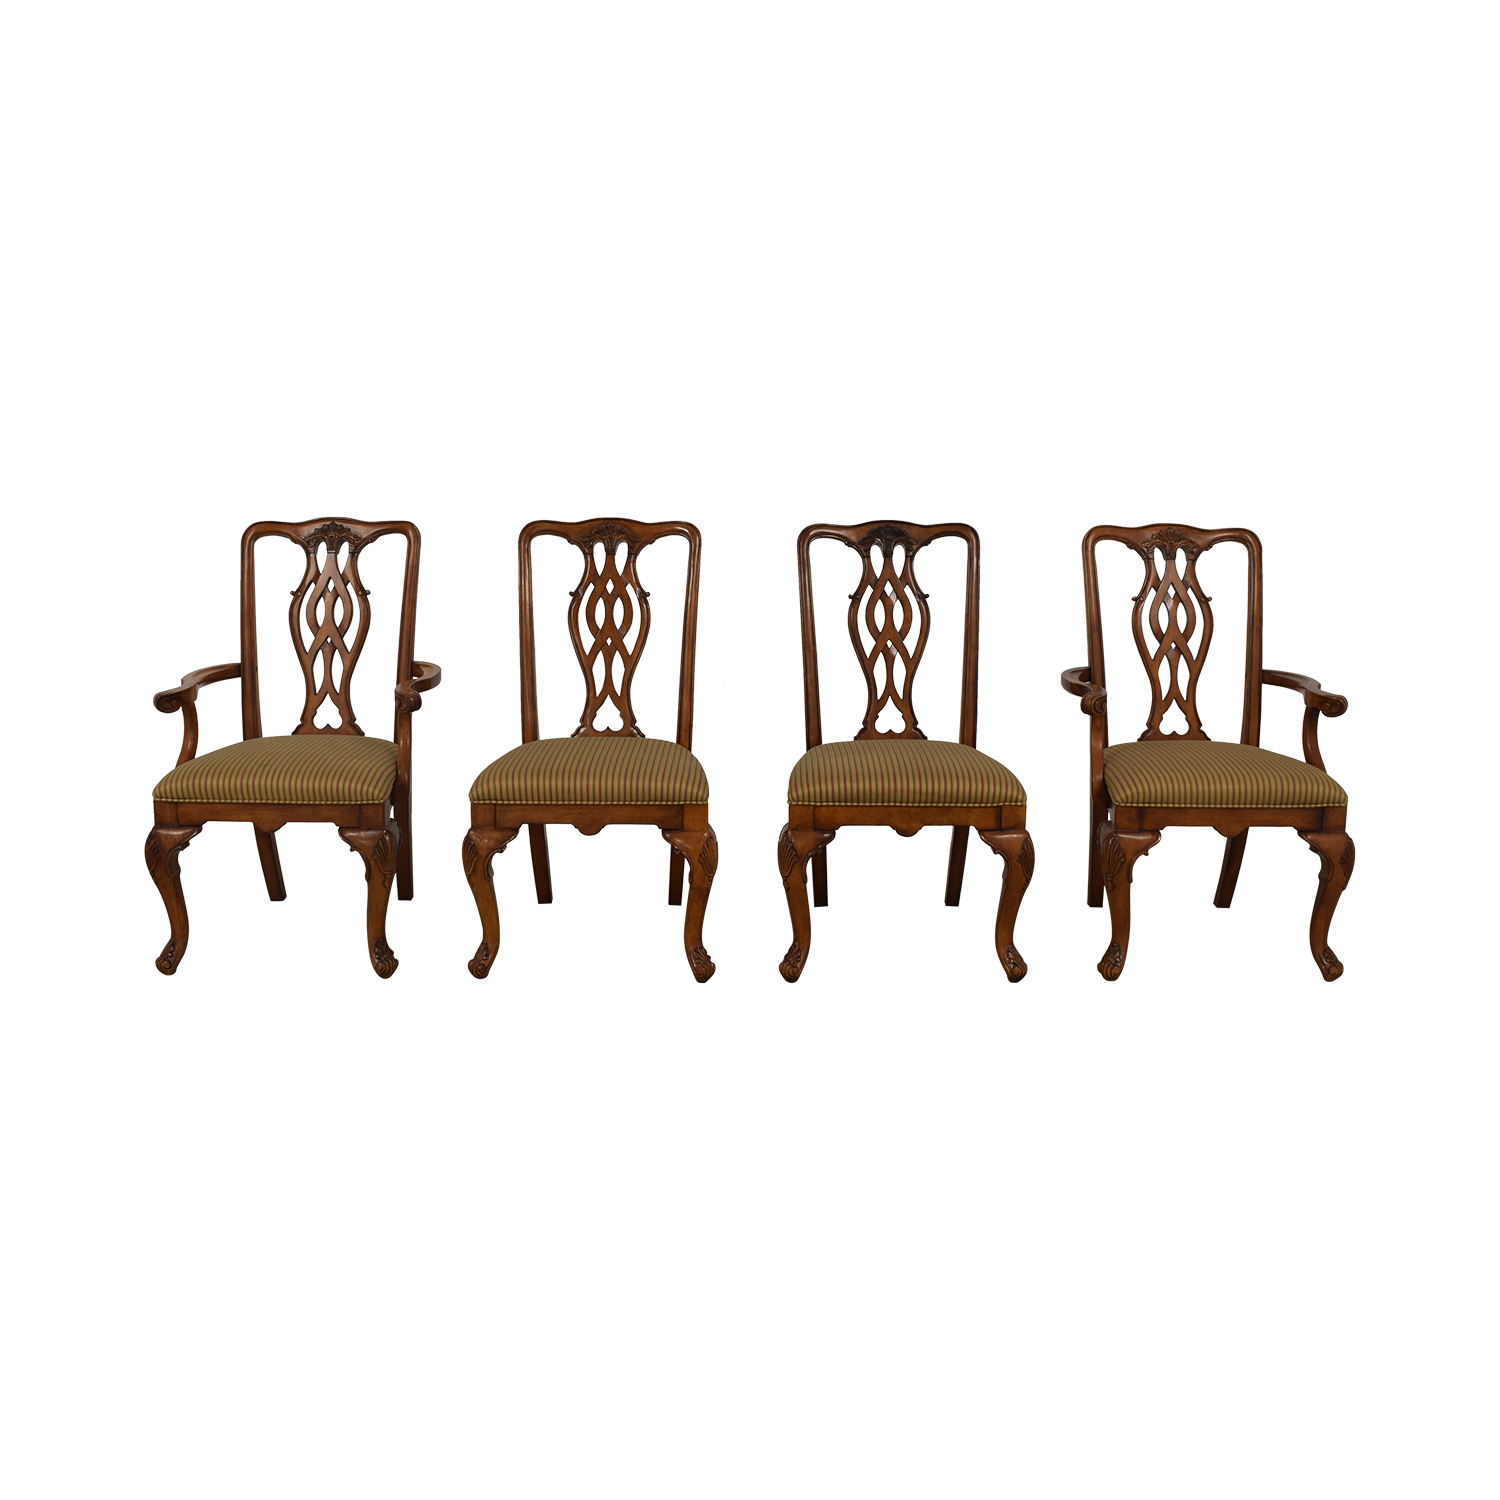 Drexel Heritage Drexel Heritage Dining Chairs coupon